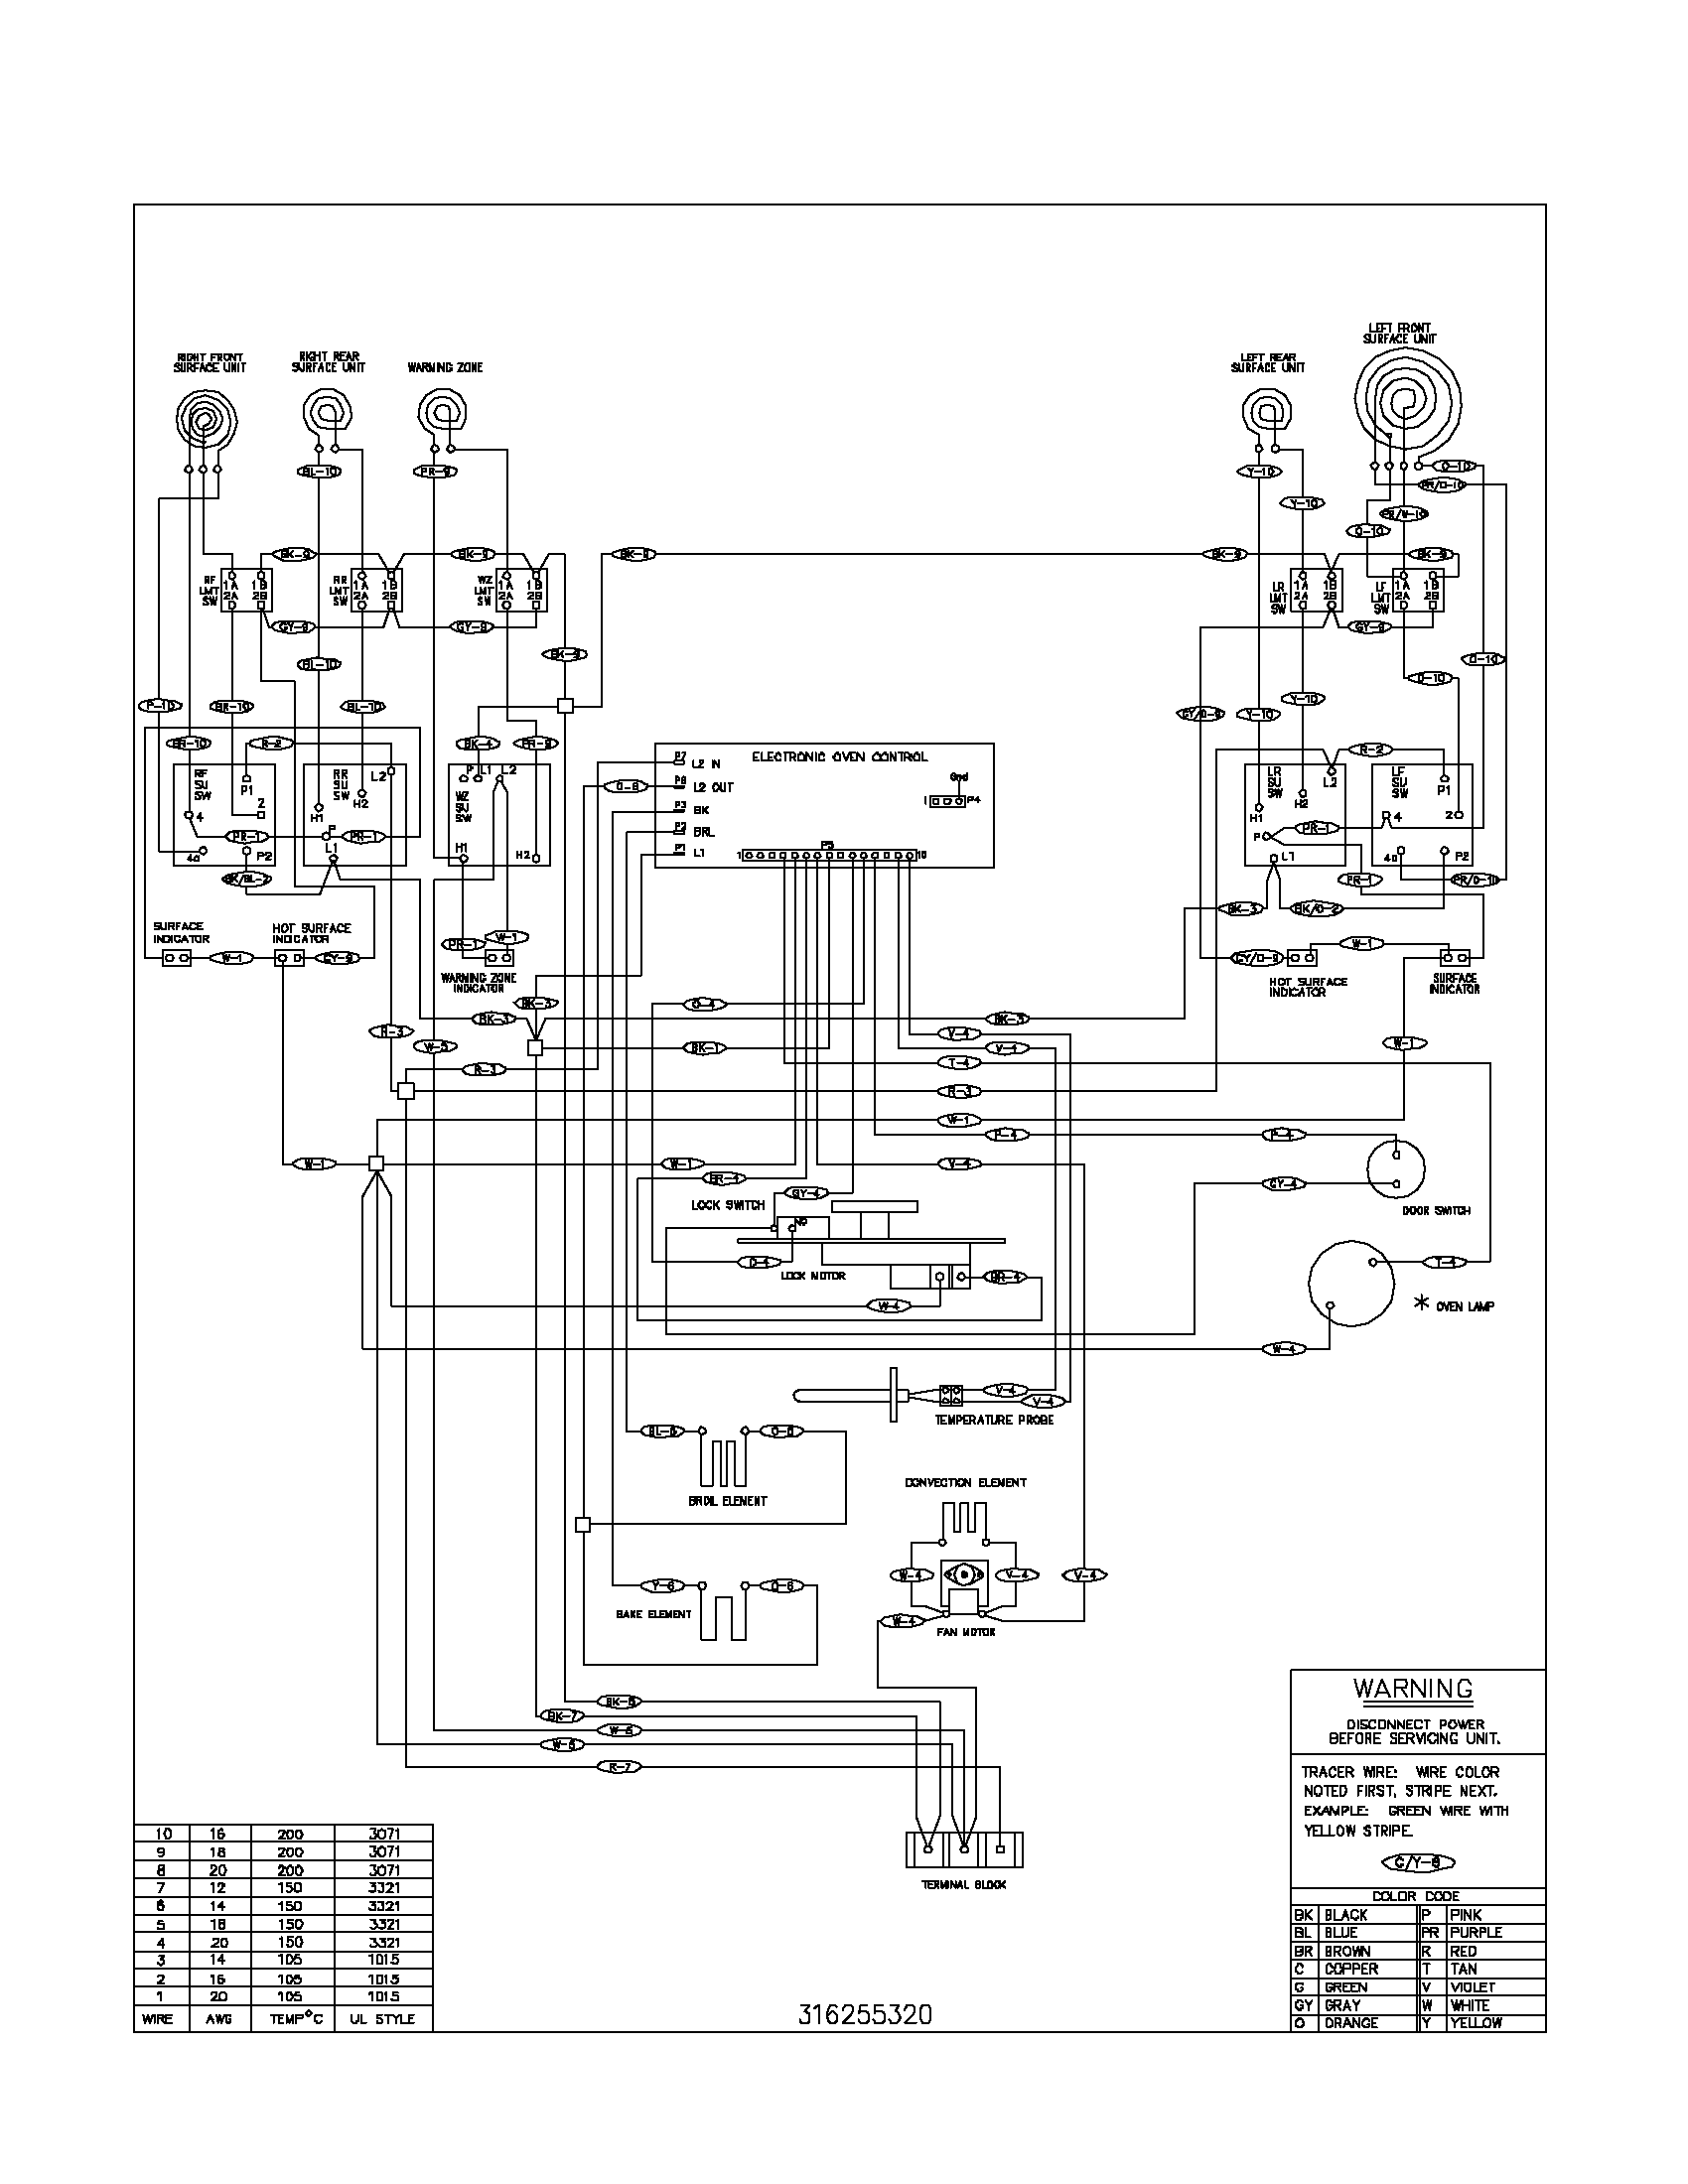 wiring diagram parts whirlpool fefl88acc electric range timer stove clocks and whirlpool dryer wiring schematic at aneh.co